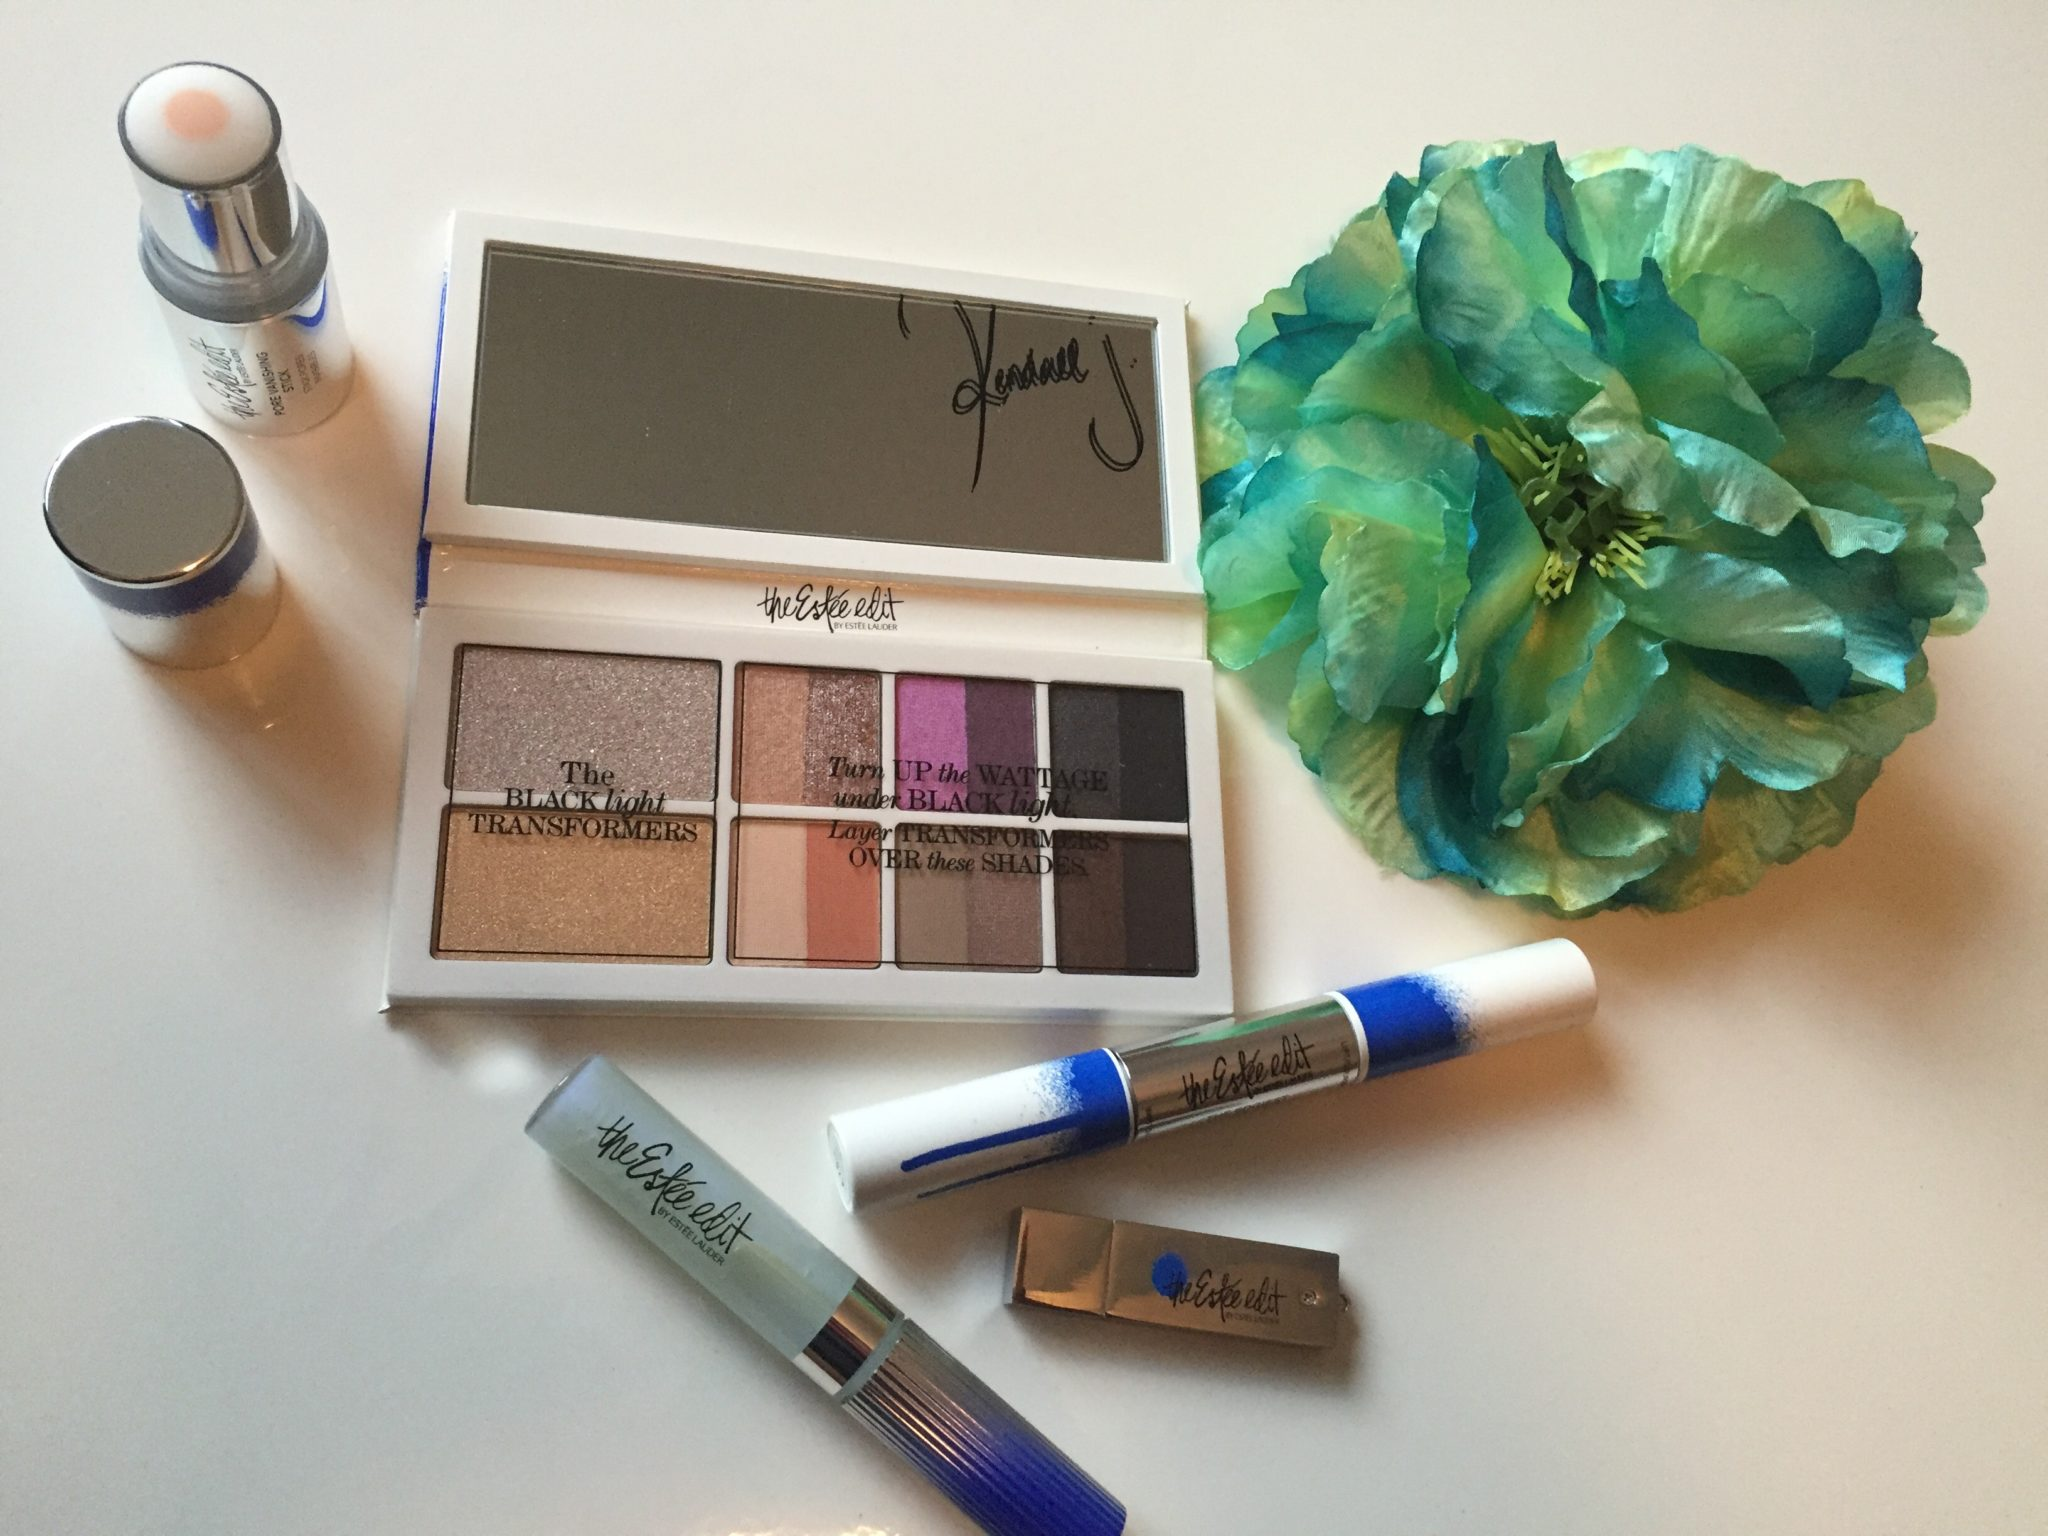 Pinky Review: The Estee Edit by Estee Lauder